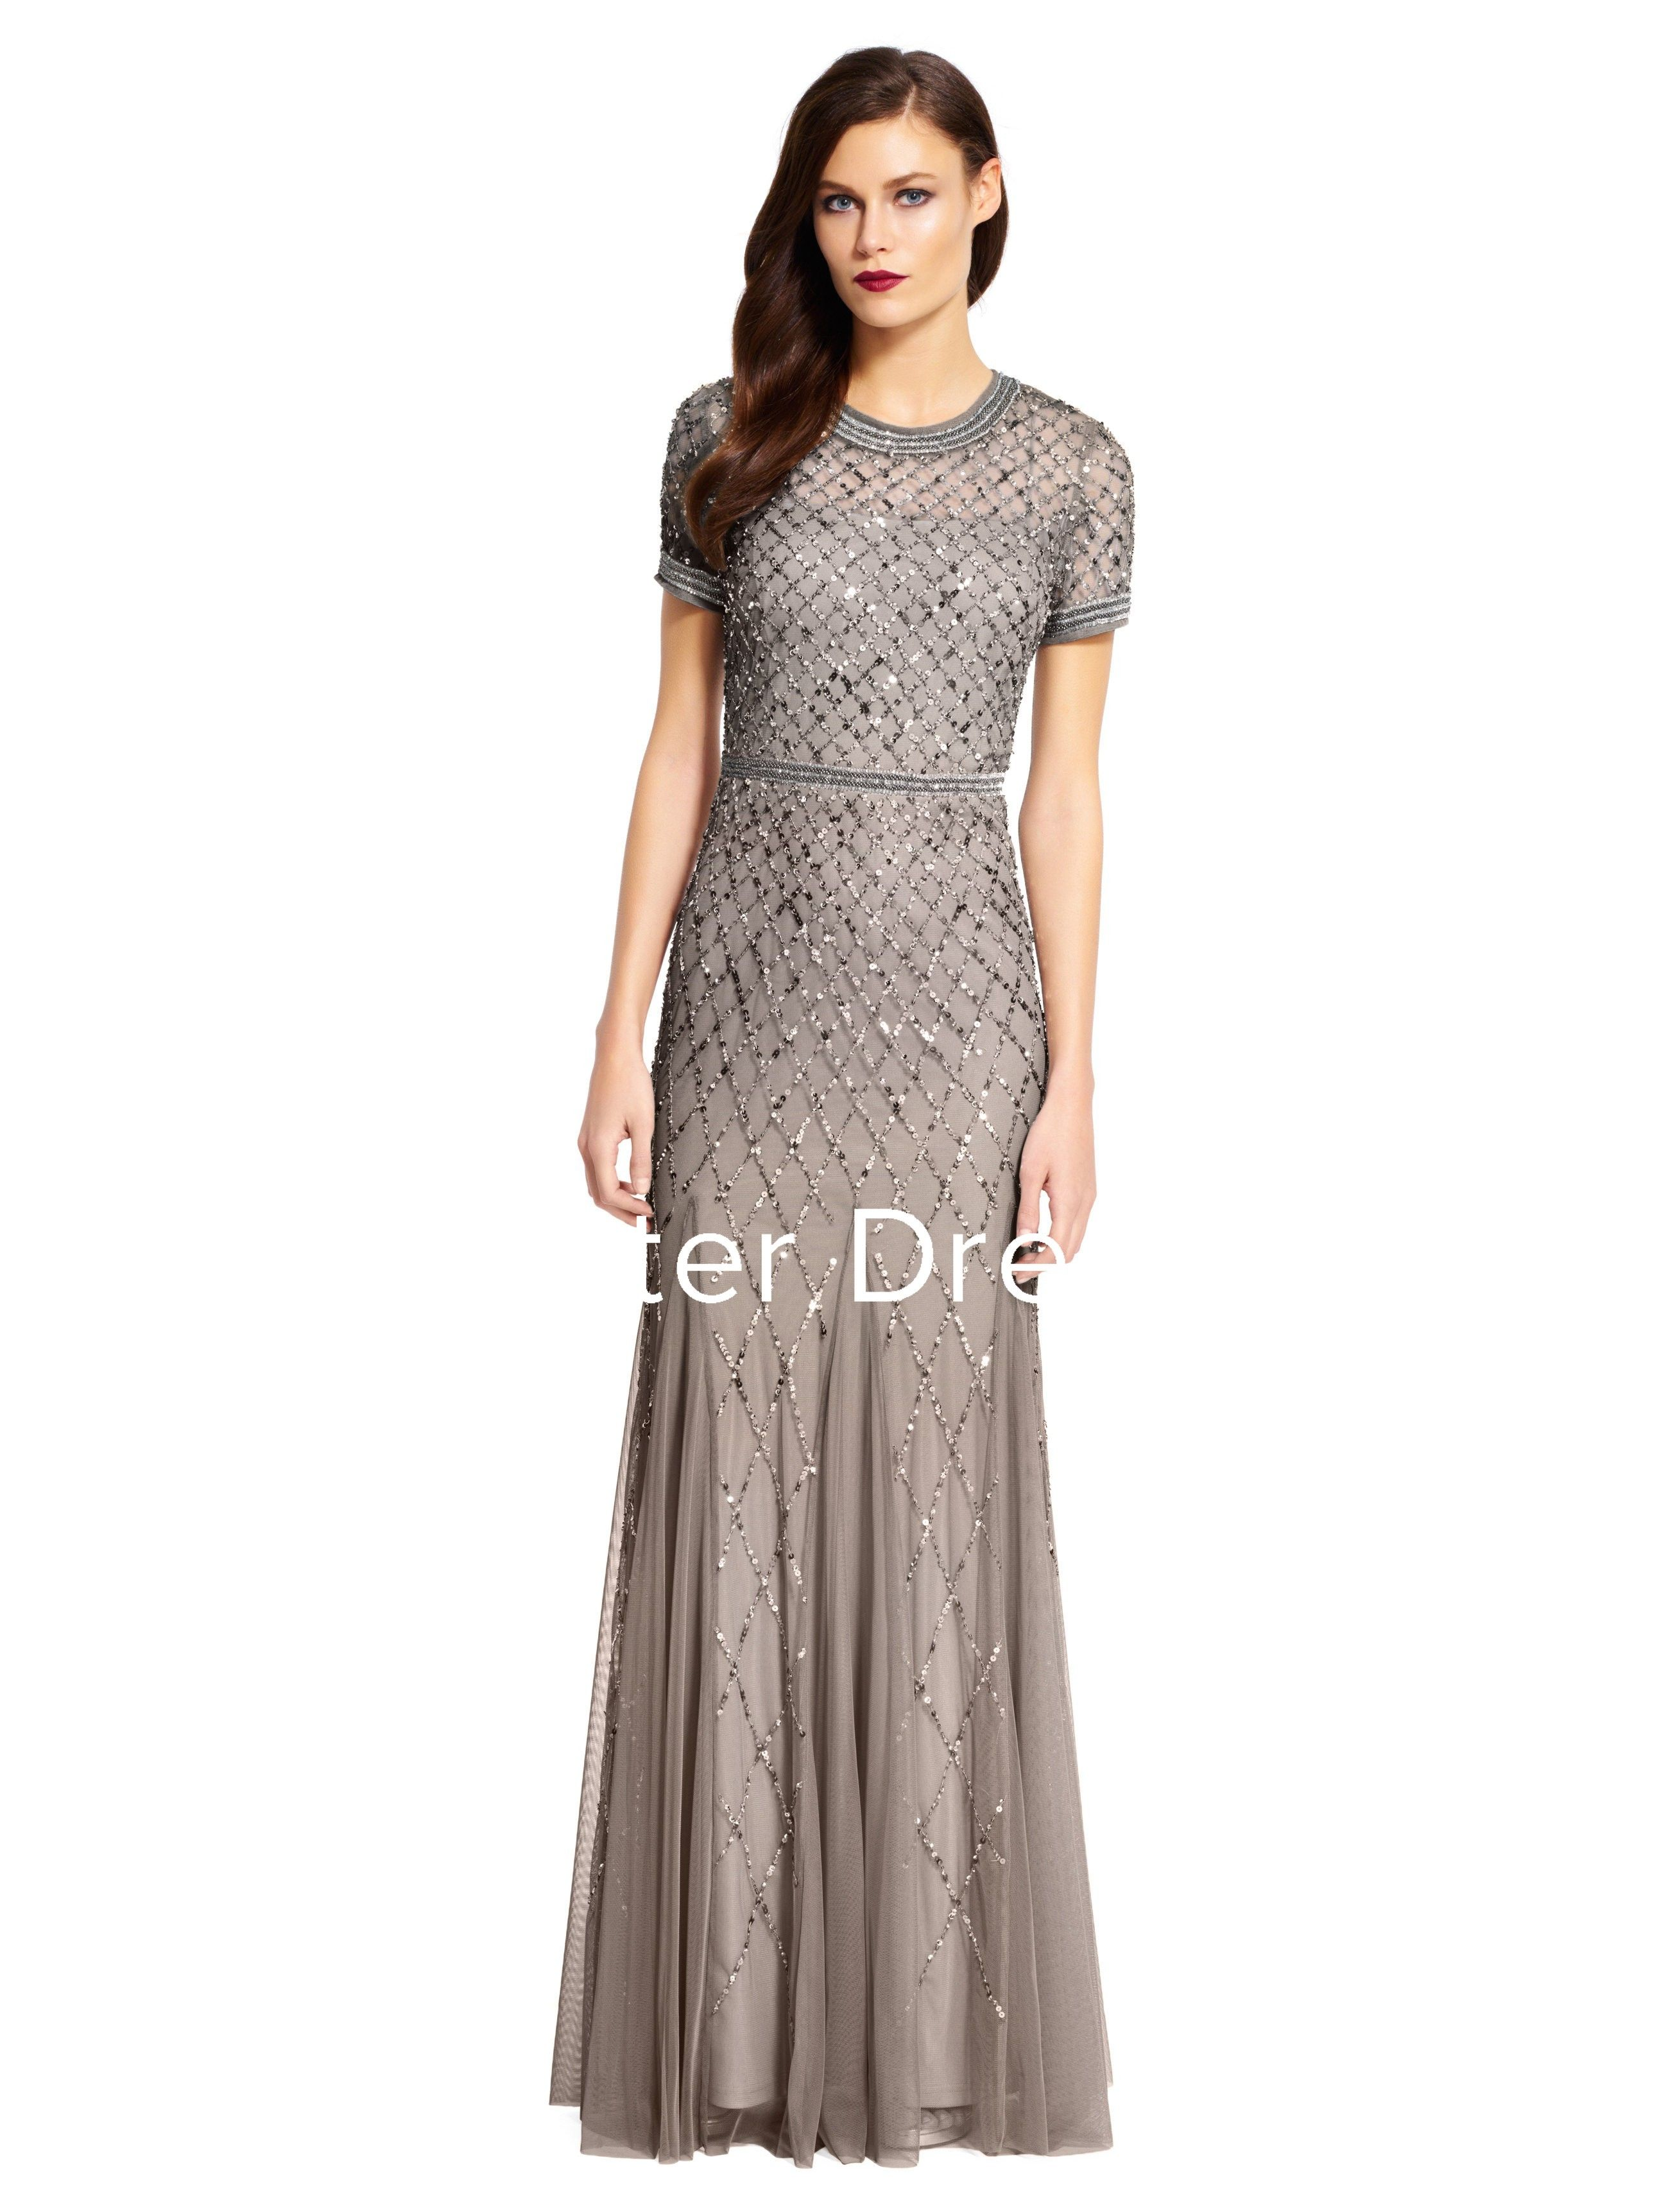 Sheath scoopneck shortsleeve floorlength sequinsutulle bridesmaid